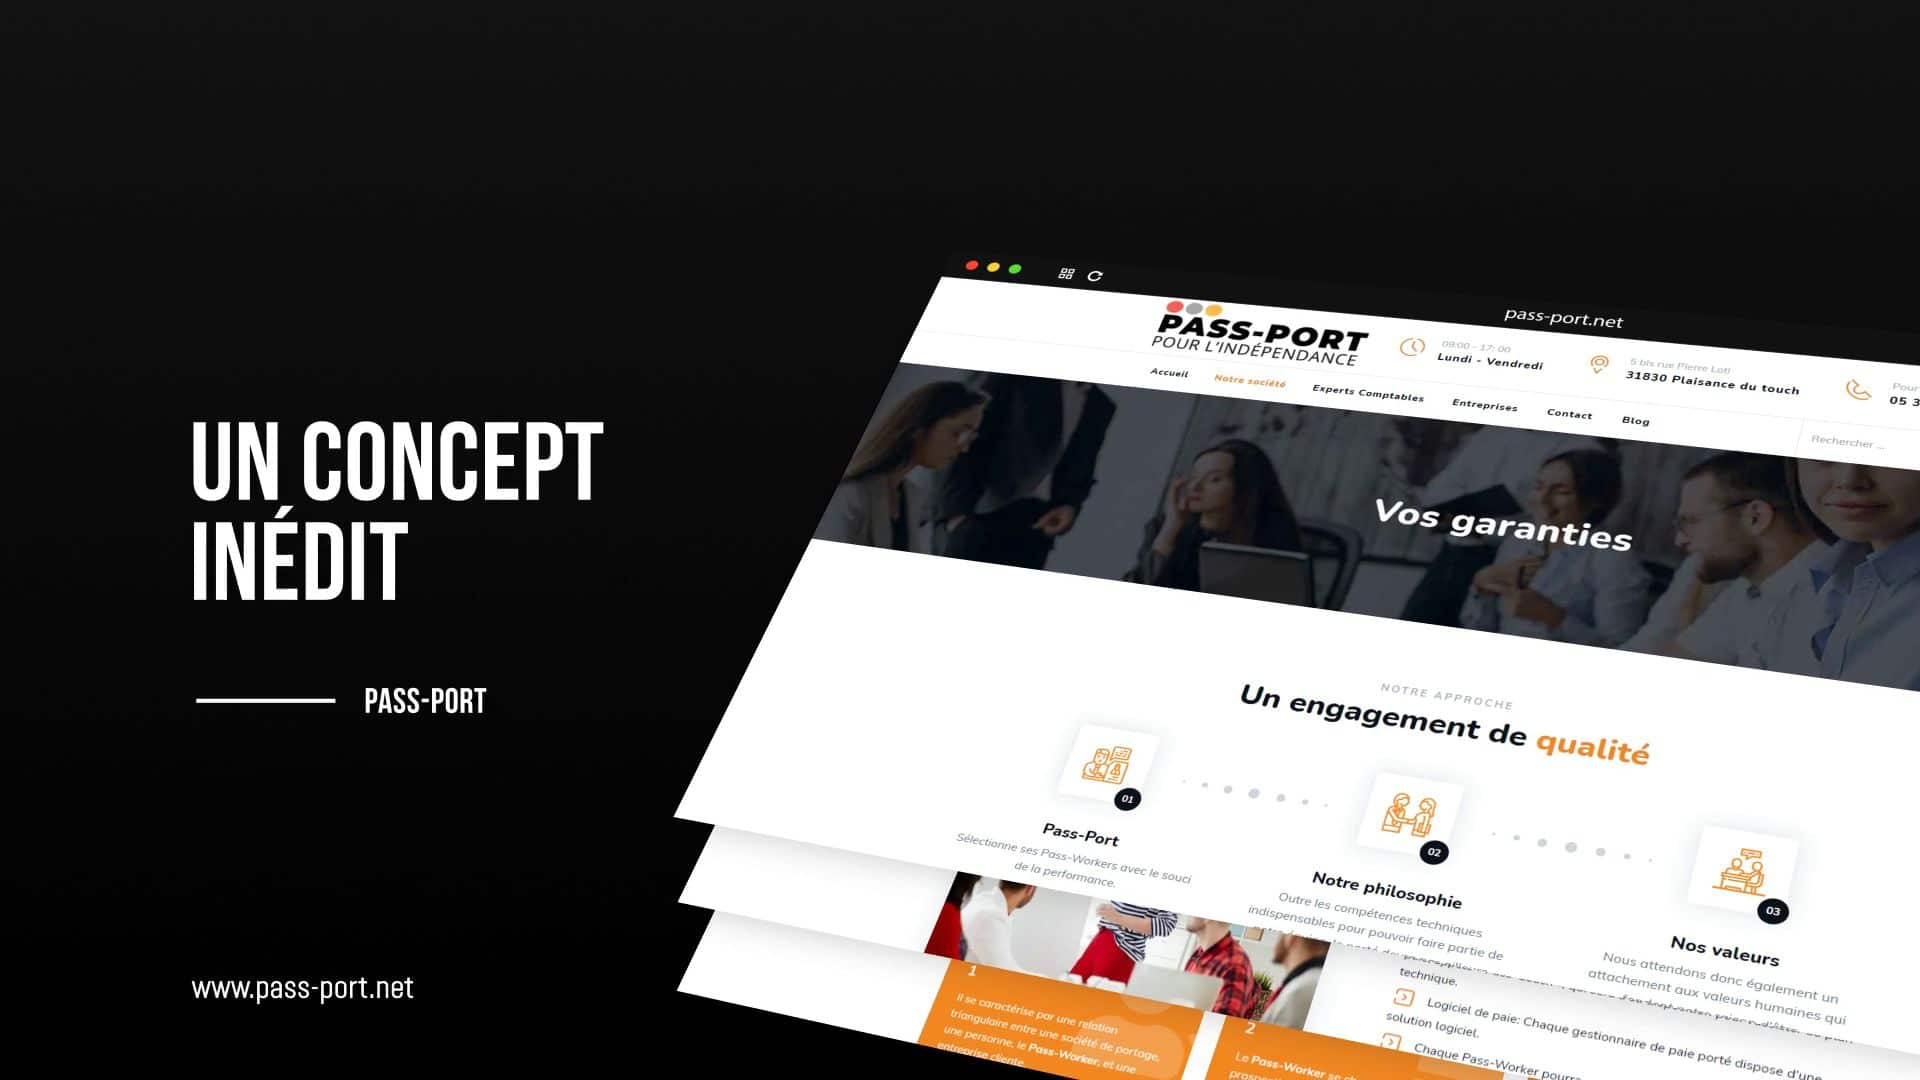 PASS PORT concept inedit  - PASS-PORT, un concept inédit !